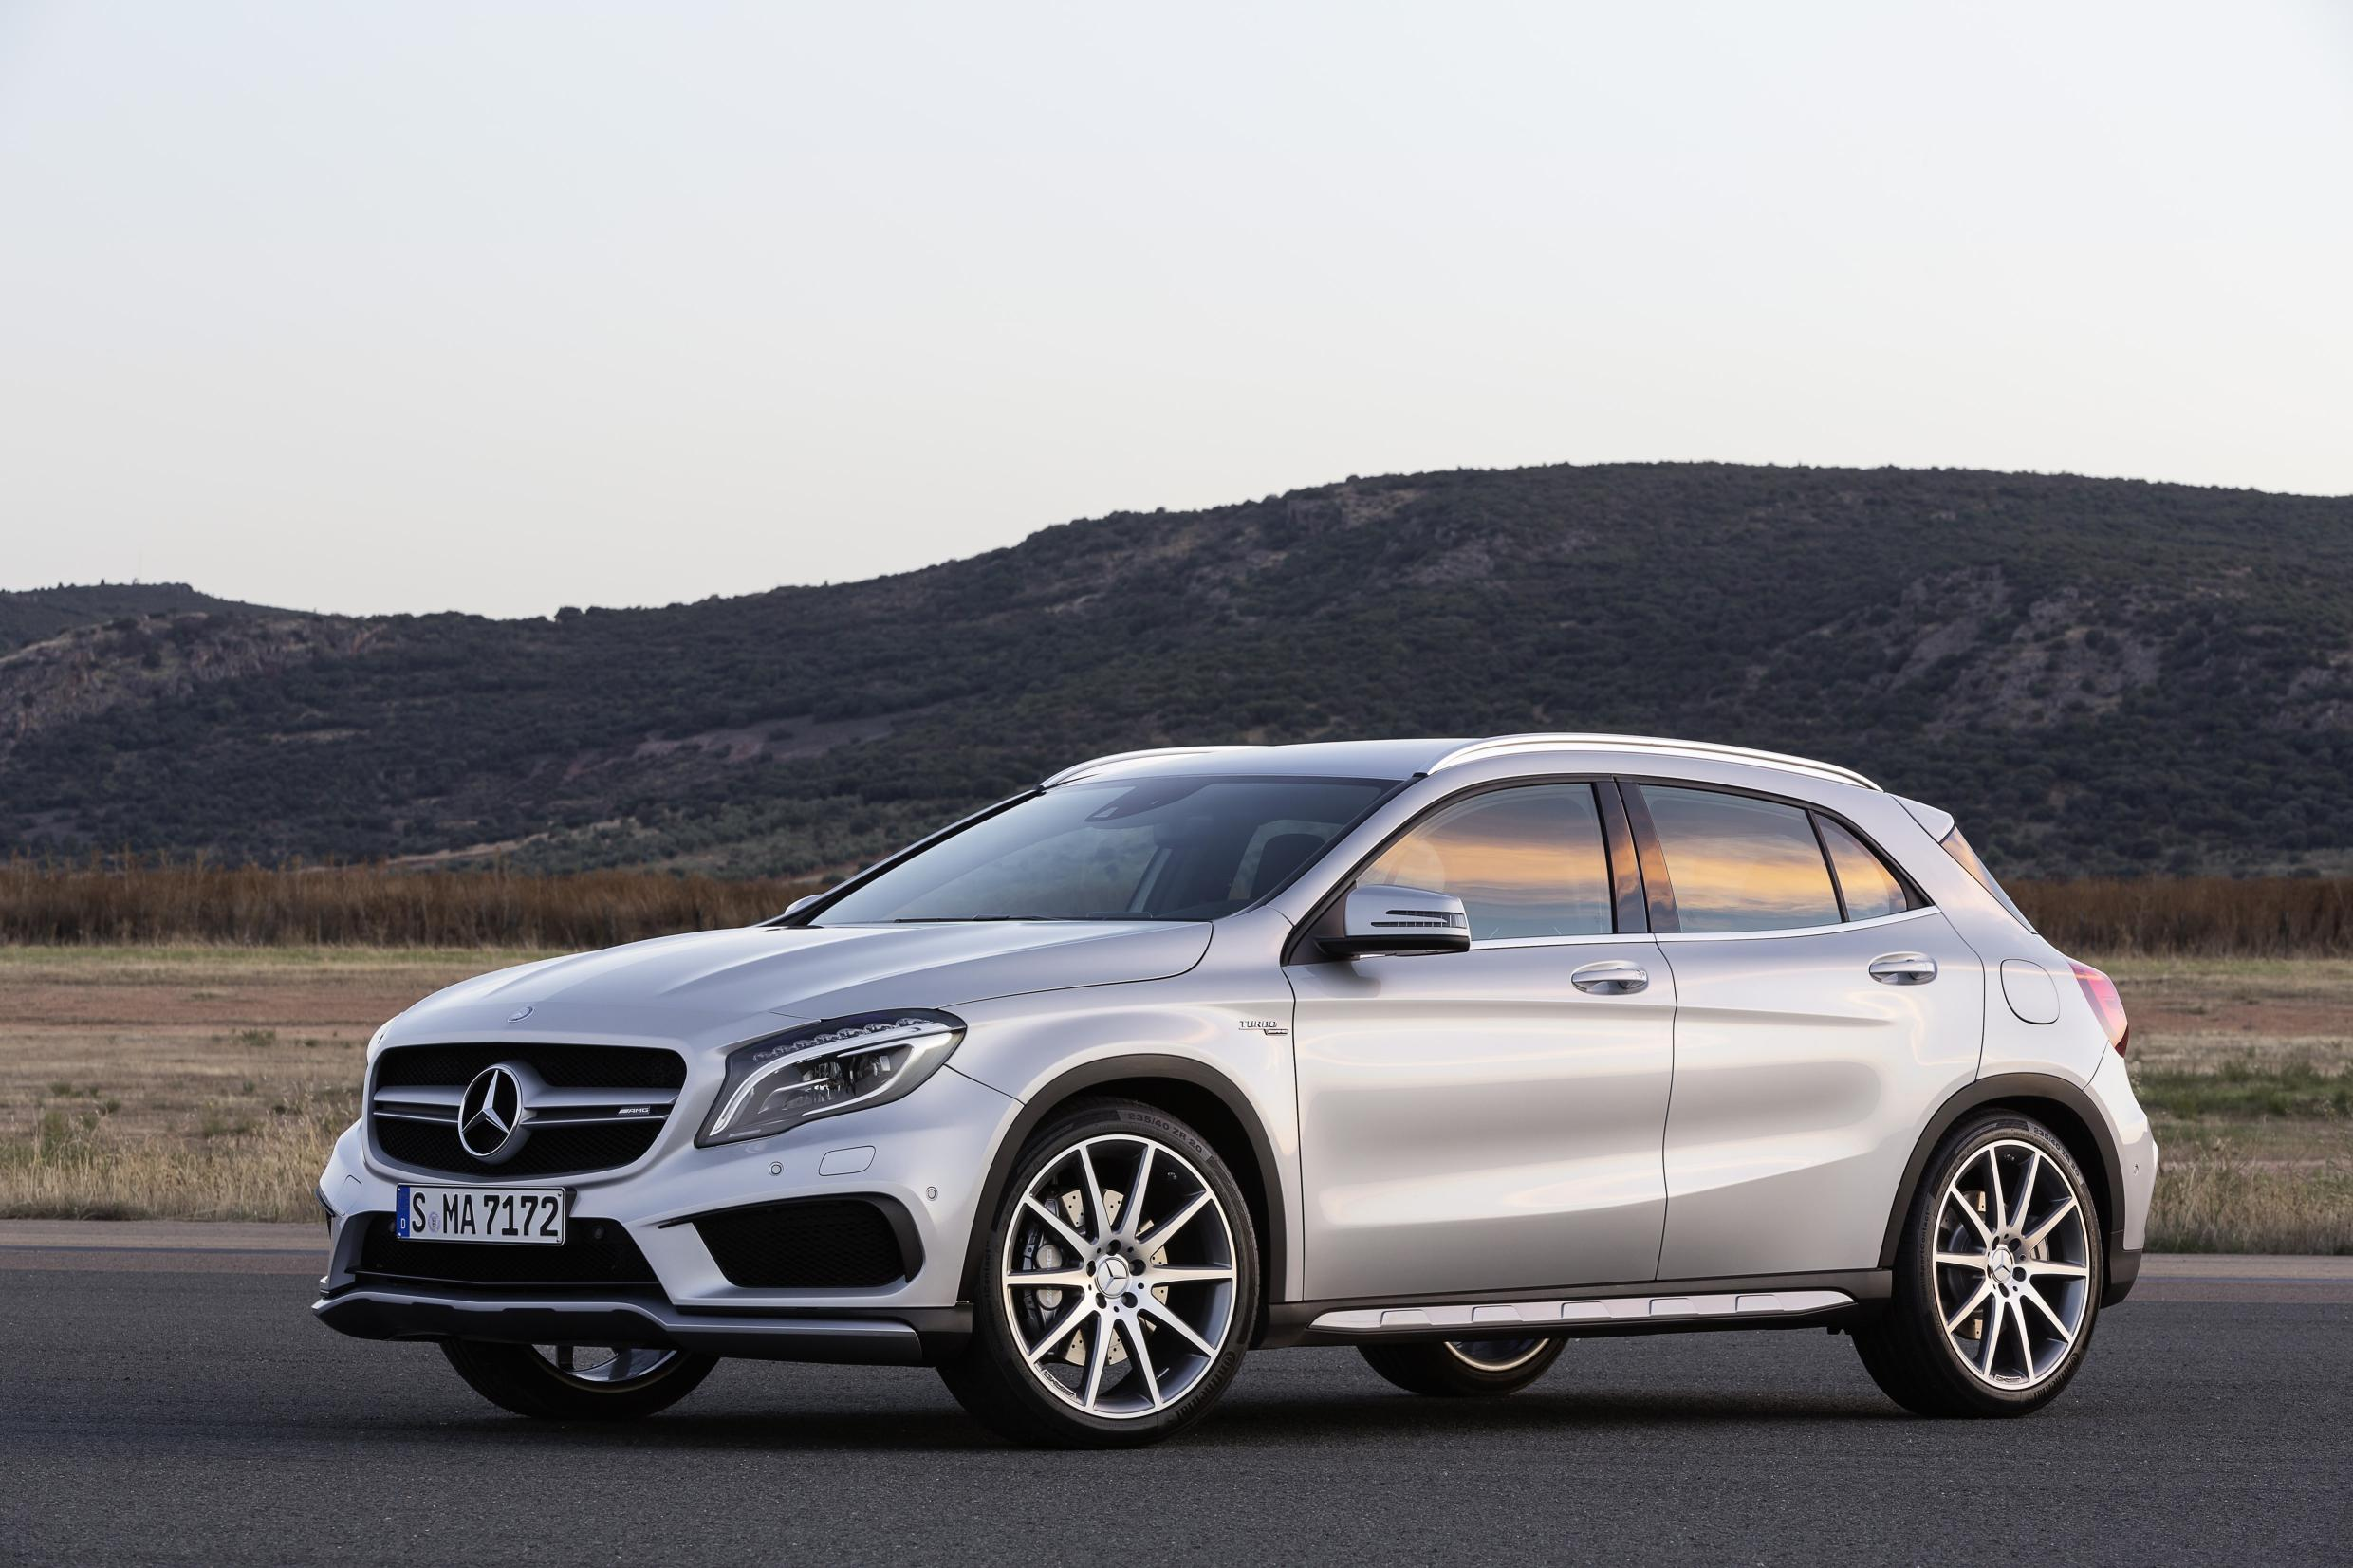 mercedes gla 45 amg new crossover merc has all round performance. Black Bedroom Furniture Sets. Home Design Ideas